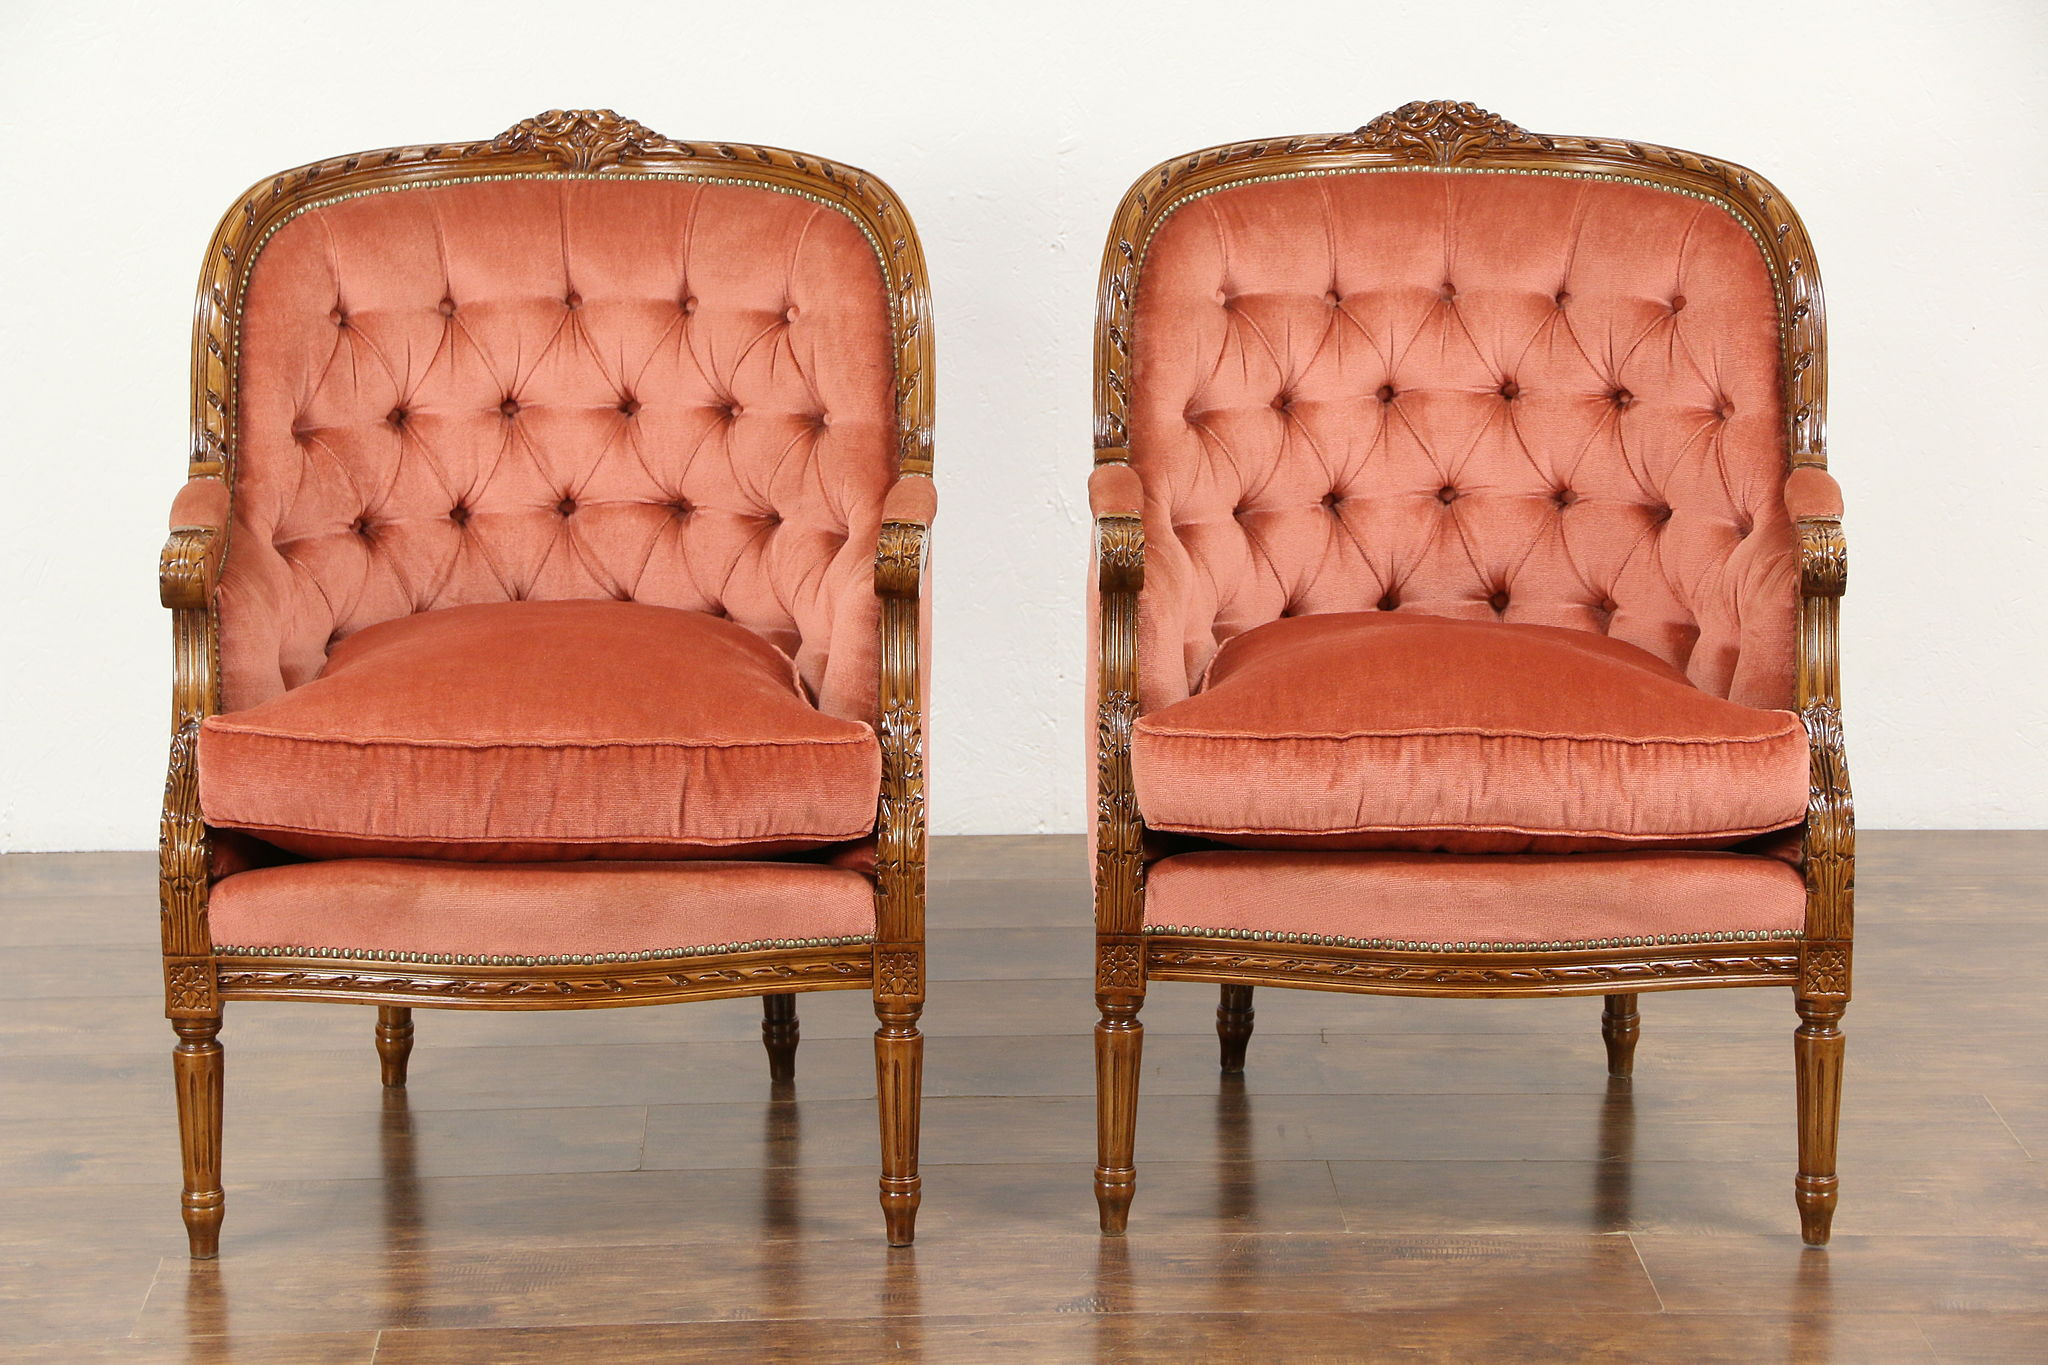 Pair Of French Louis XVI Style Vintage Carved Chairs, Tufted Upholstery ...